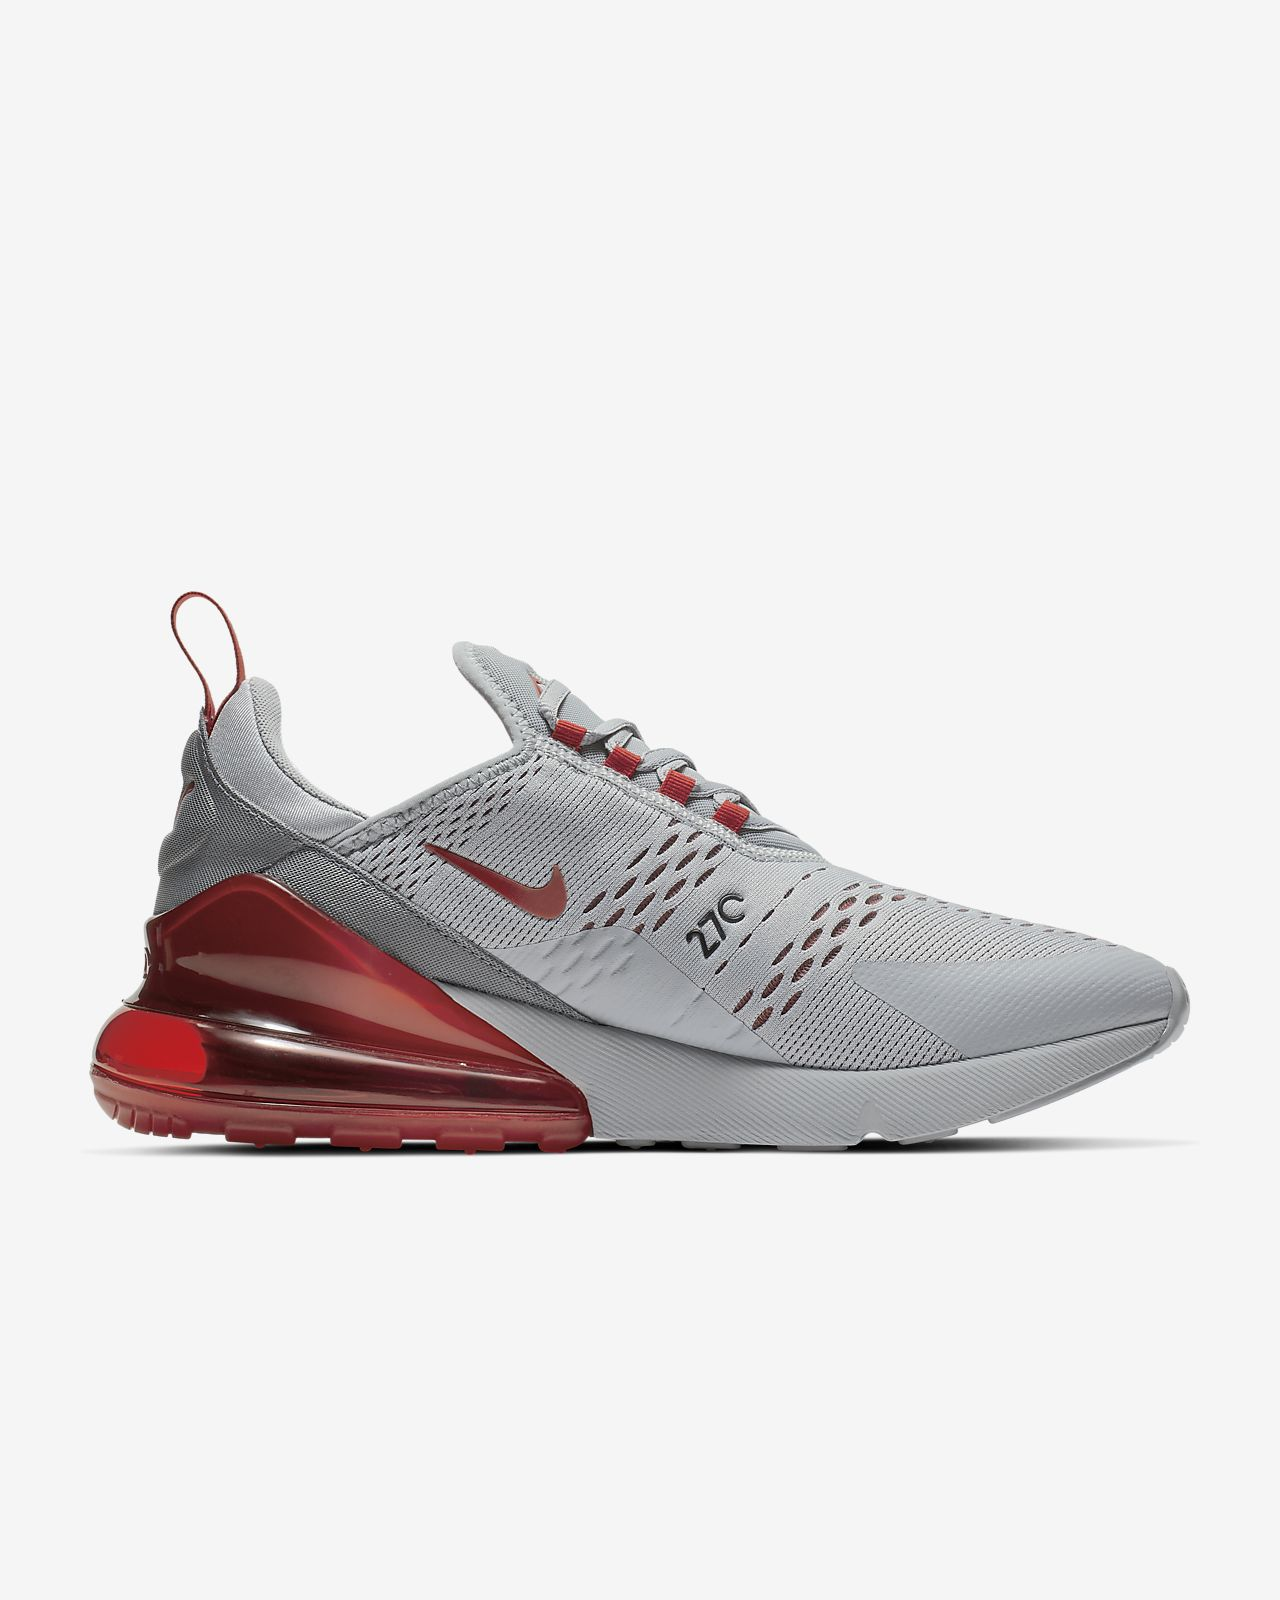 promo code 27e30 d63c6 Nike Air Max 270 Men's Shoe. Nike.com GB